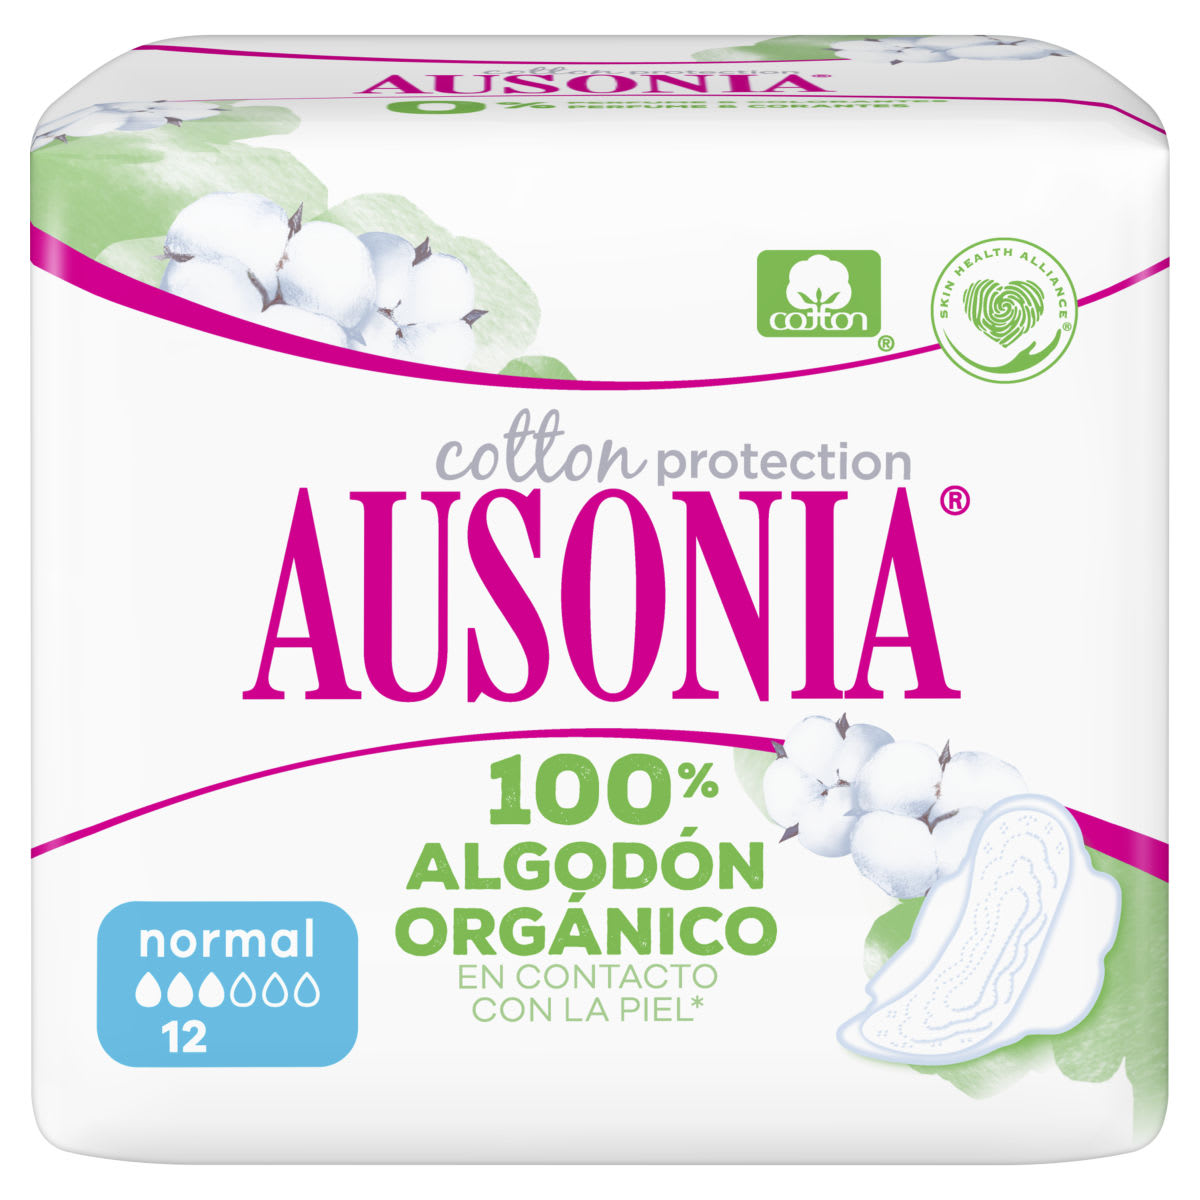 AUSONIA Cotton Protection Normal